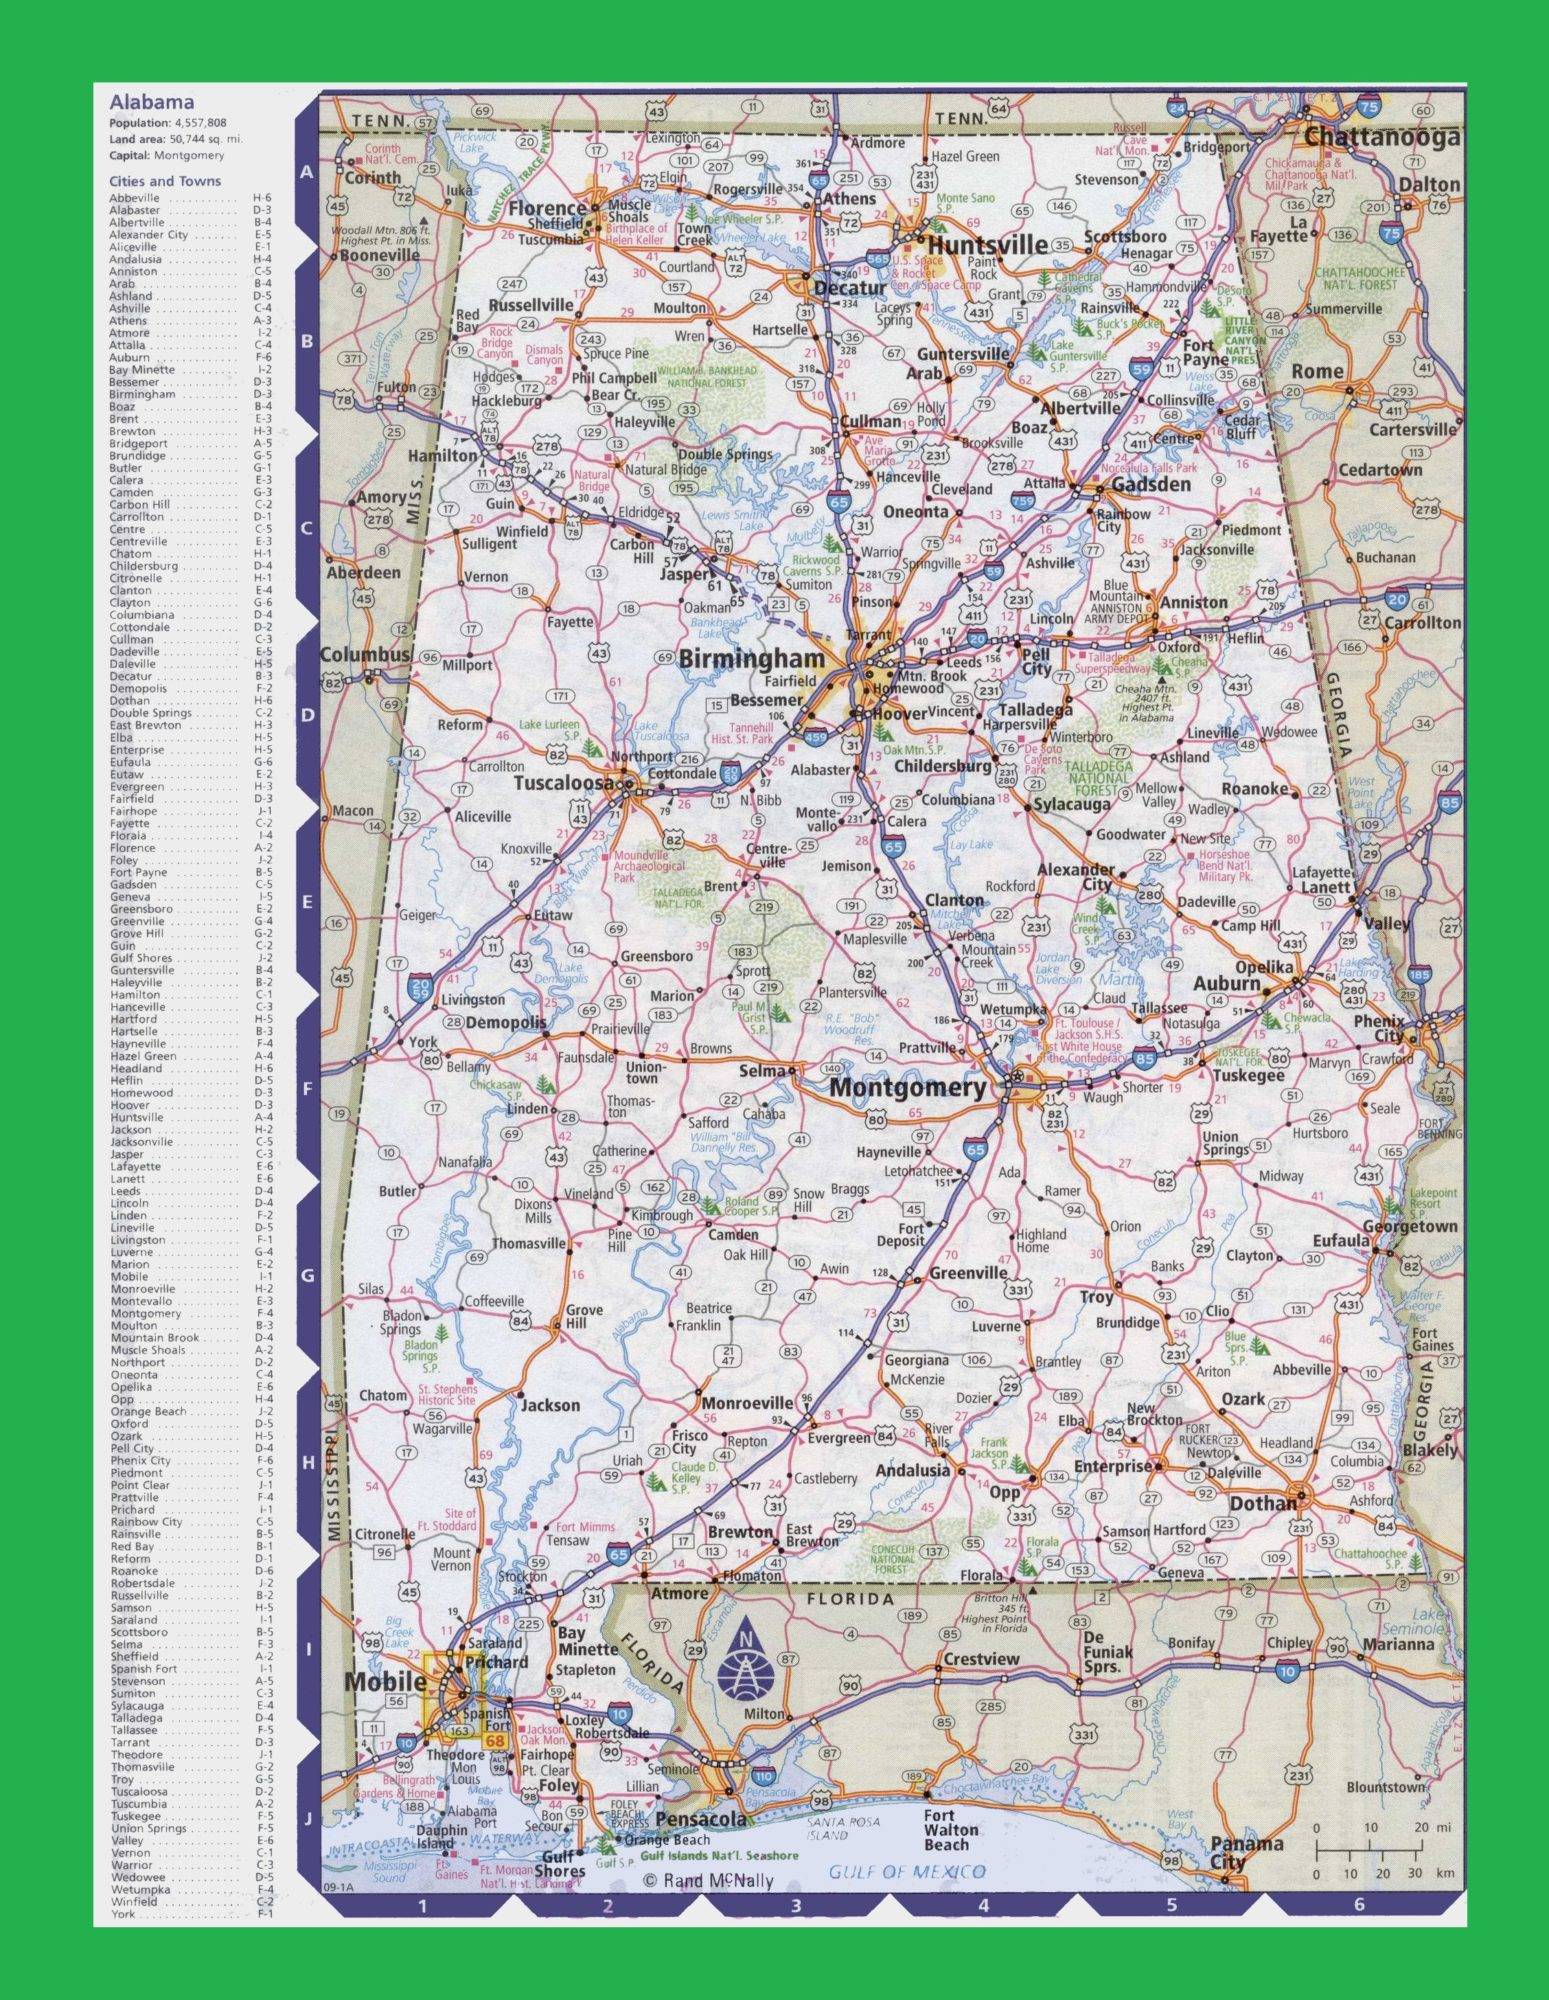 Alabama Large Political  Map   Political  Map of Alabama With Capital , city and River lake-2